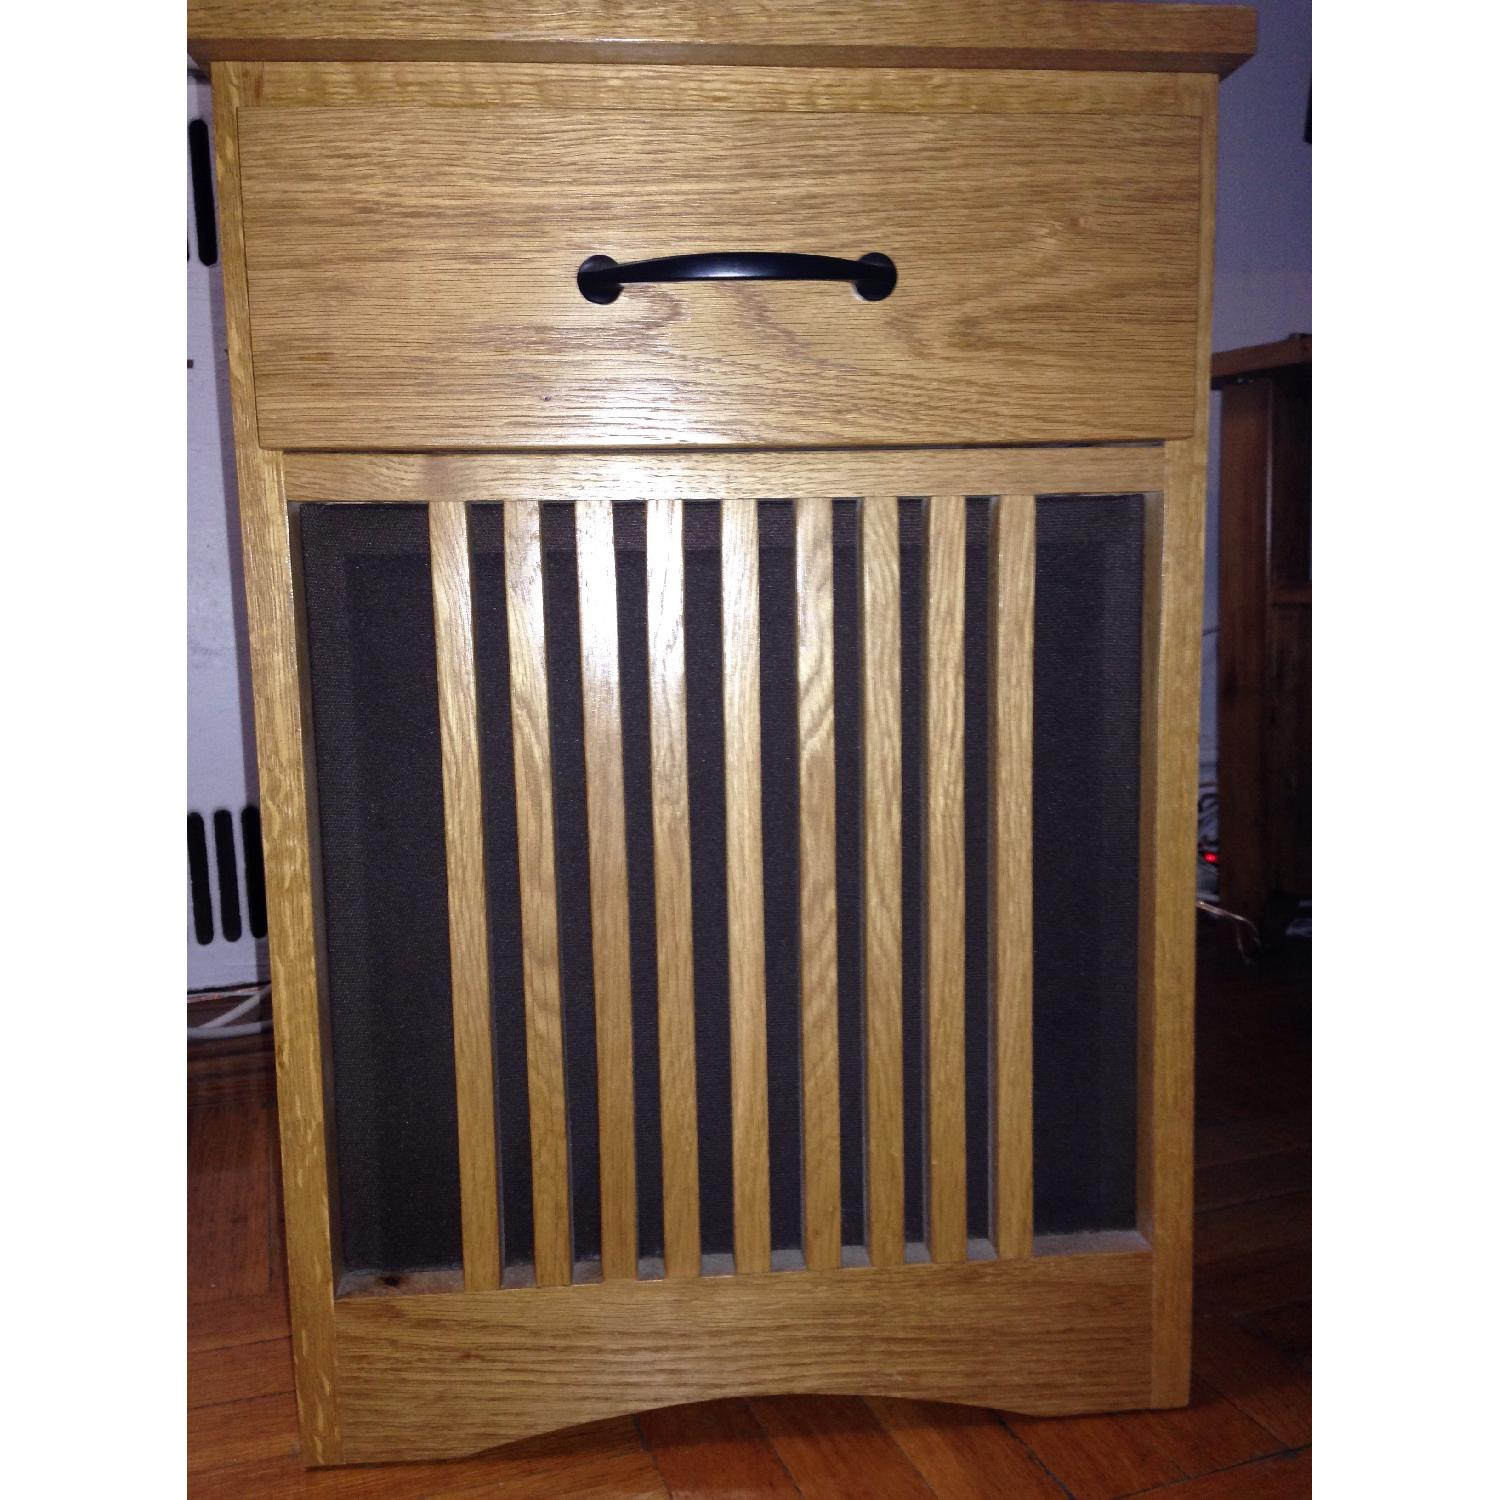 End Table w/ Subwoofer Cabinet - image-1